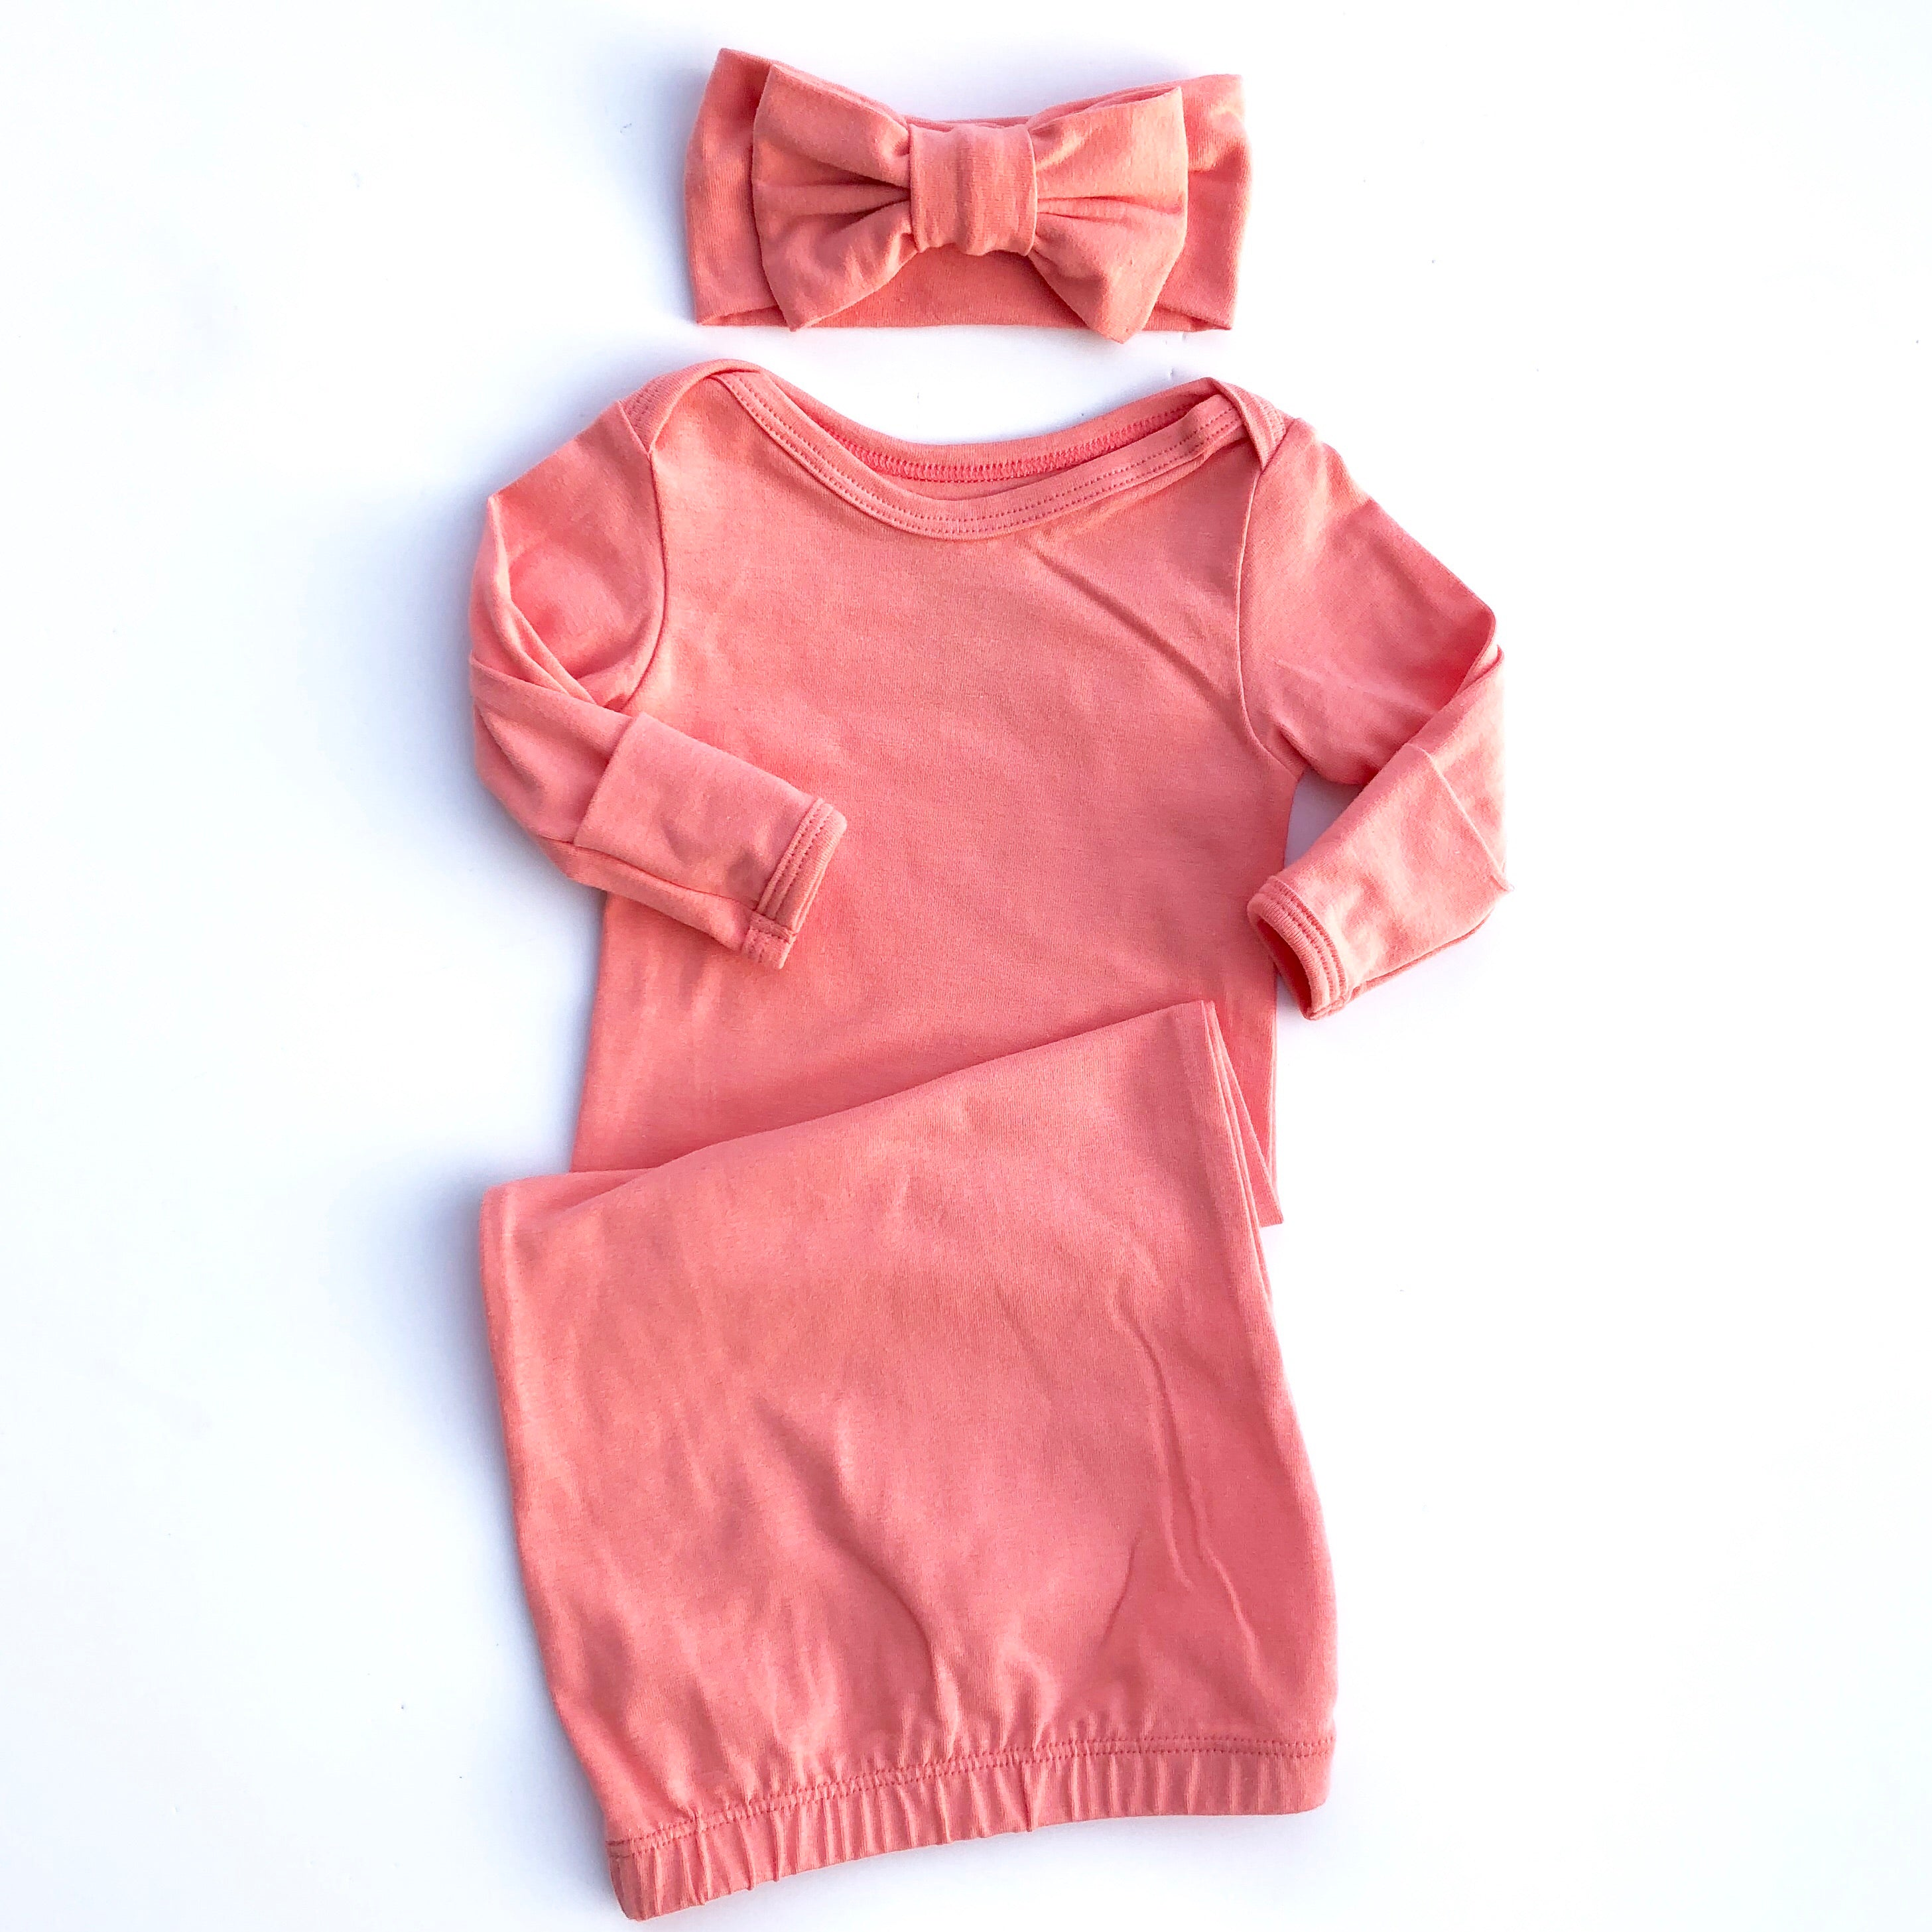 Dark Peach Elastic Bottom Baby Layette Gown - Oh So Vera